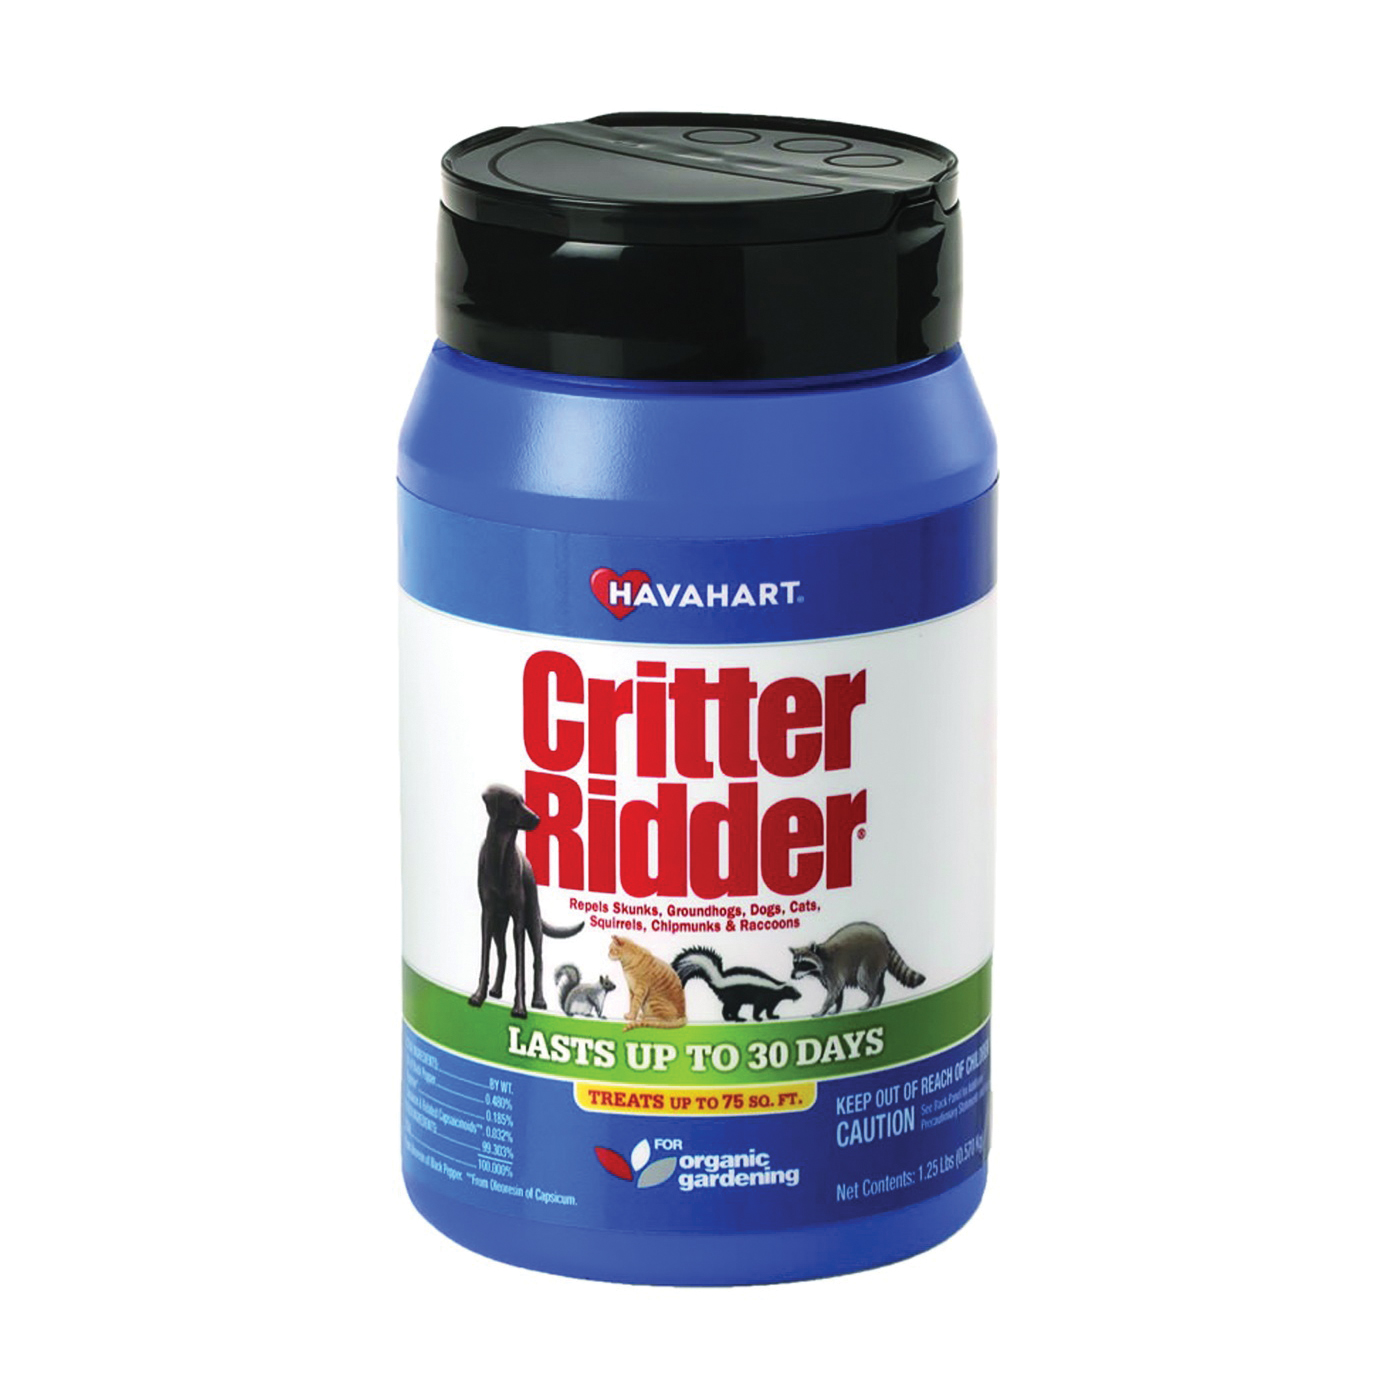 Picture of Havahart Critter Ridder 3141 Animal Repellent